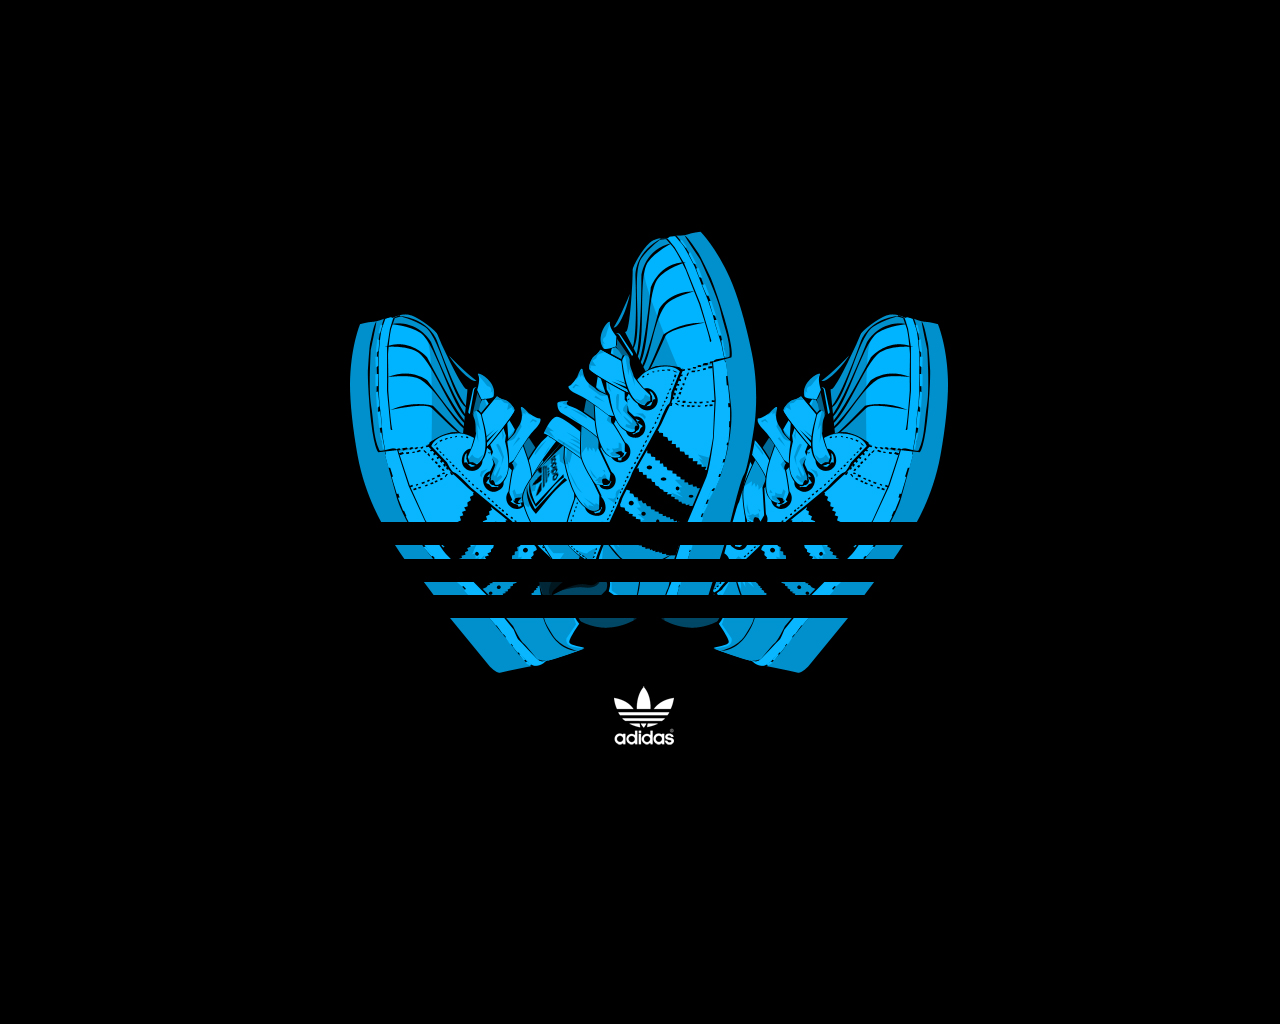 adidas logo wallpapers - wallpapersafari